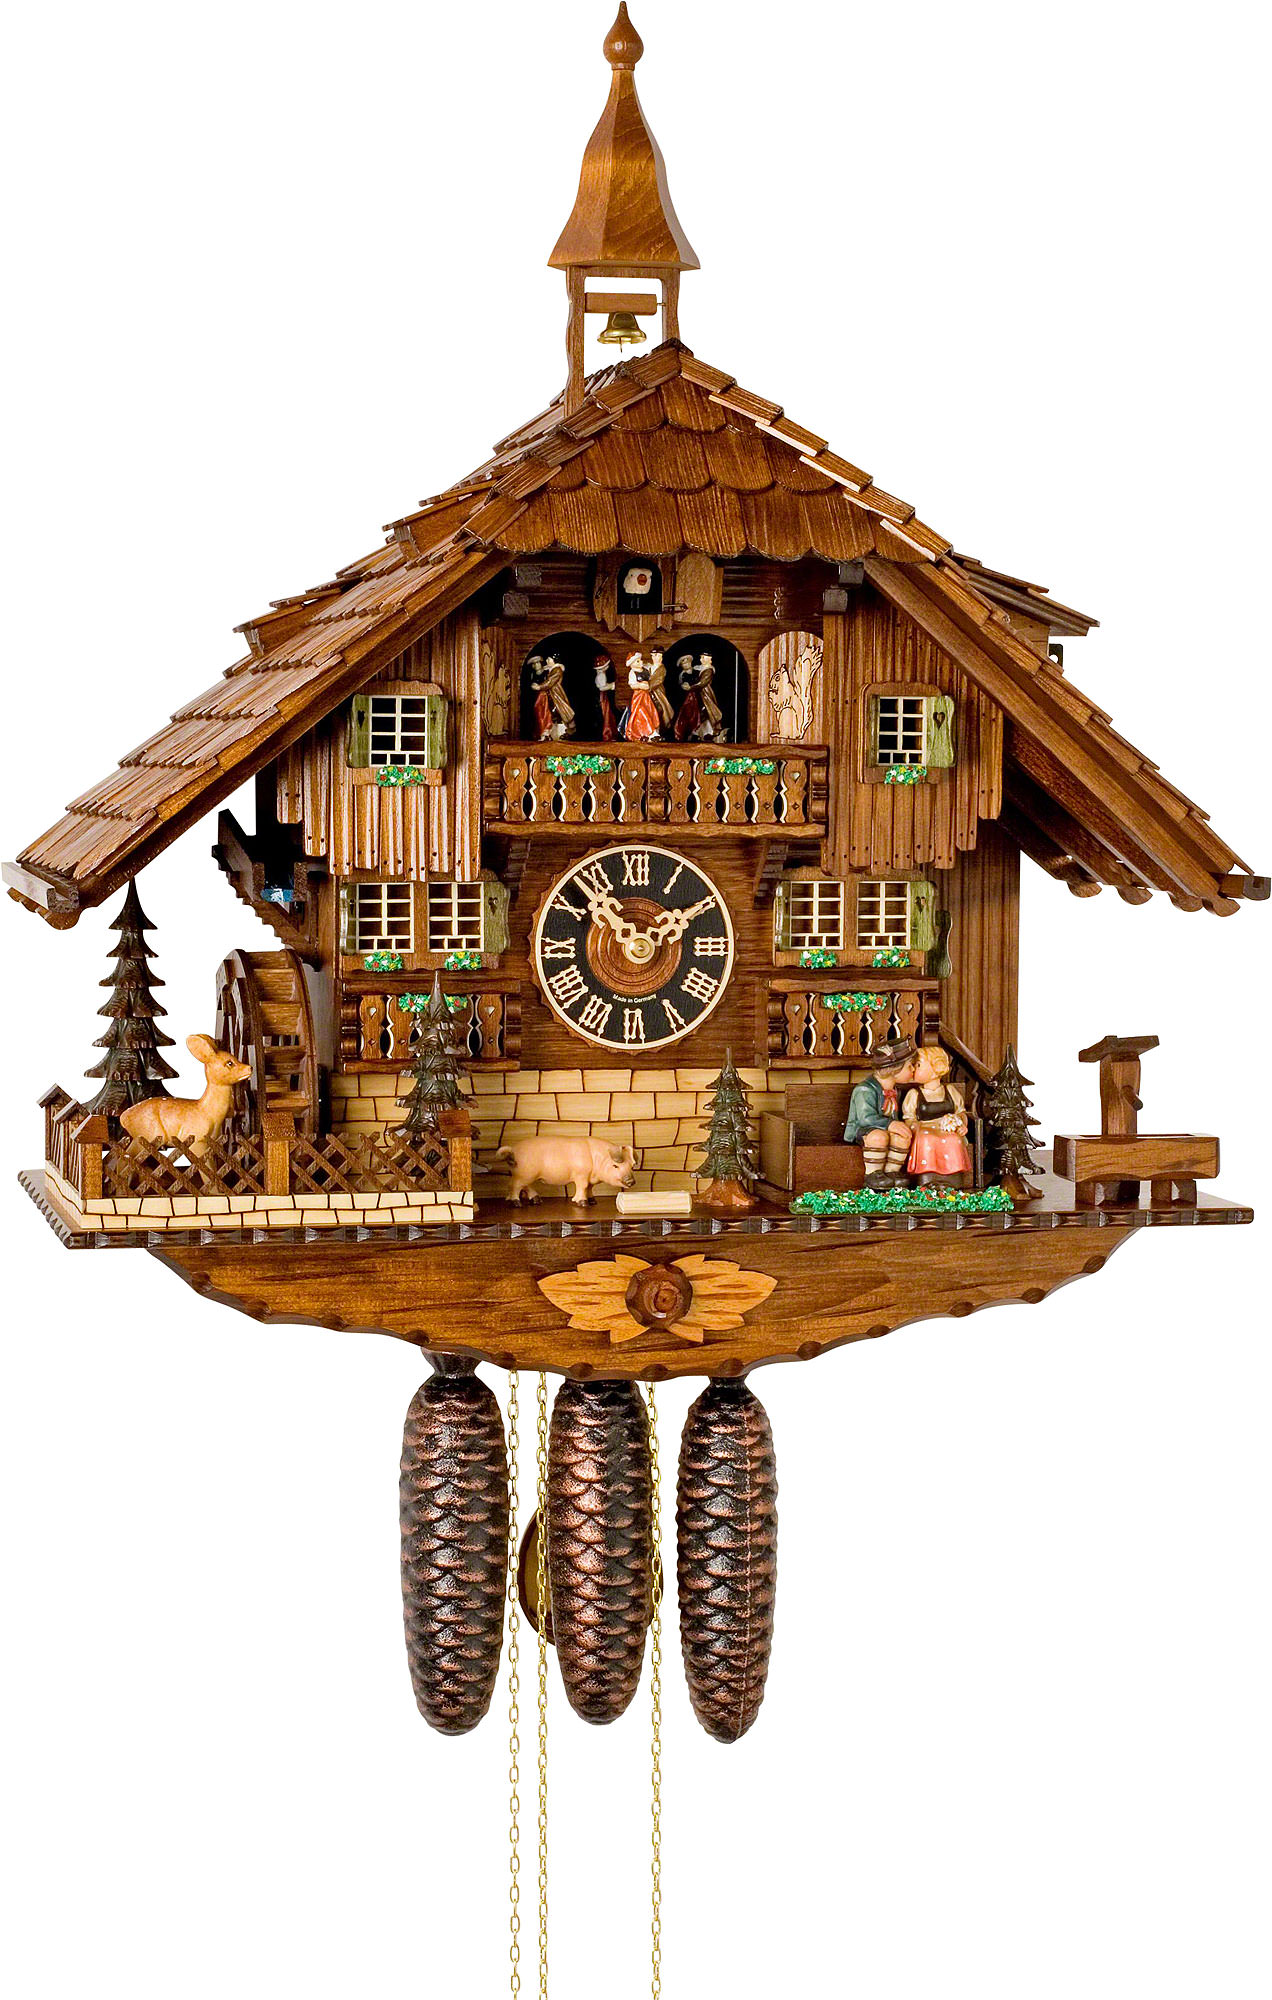 Cuckoo Clock 8daymovement ChaletStyle 58cm by Hnes 8638T